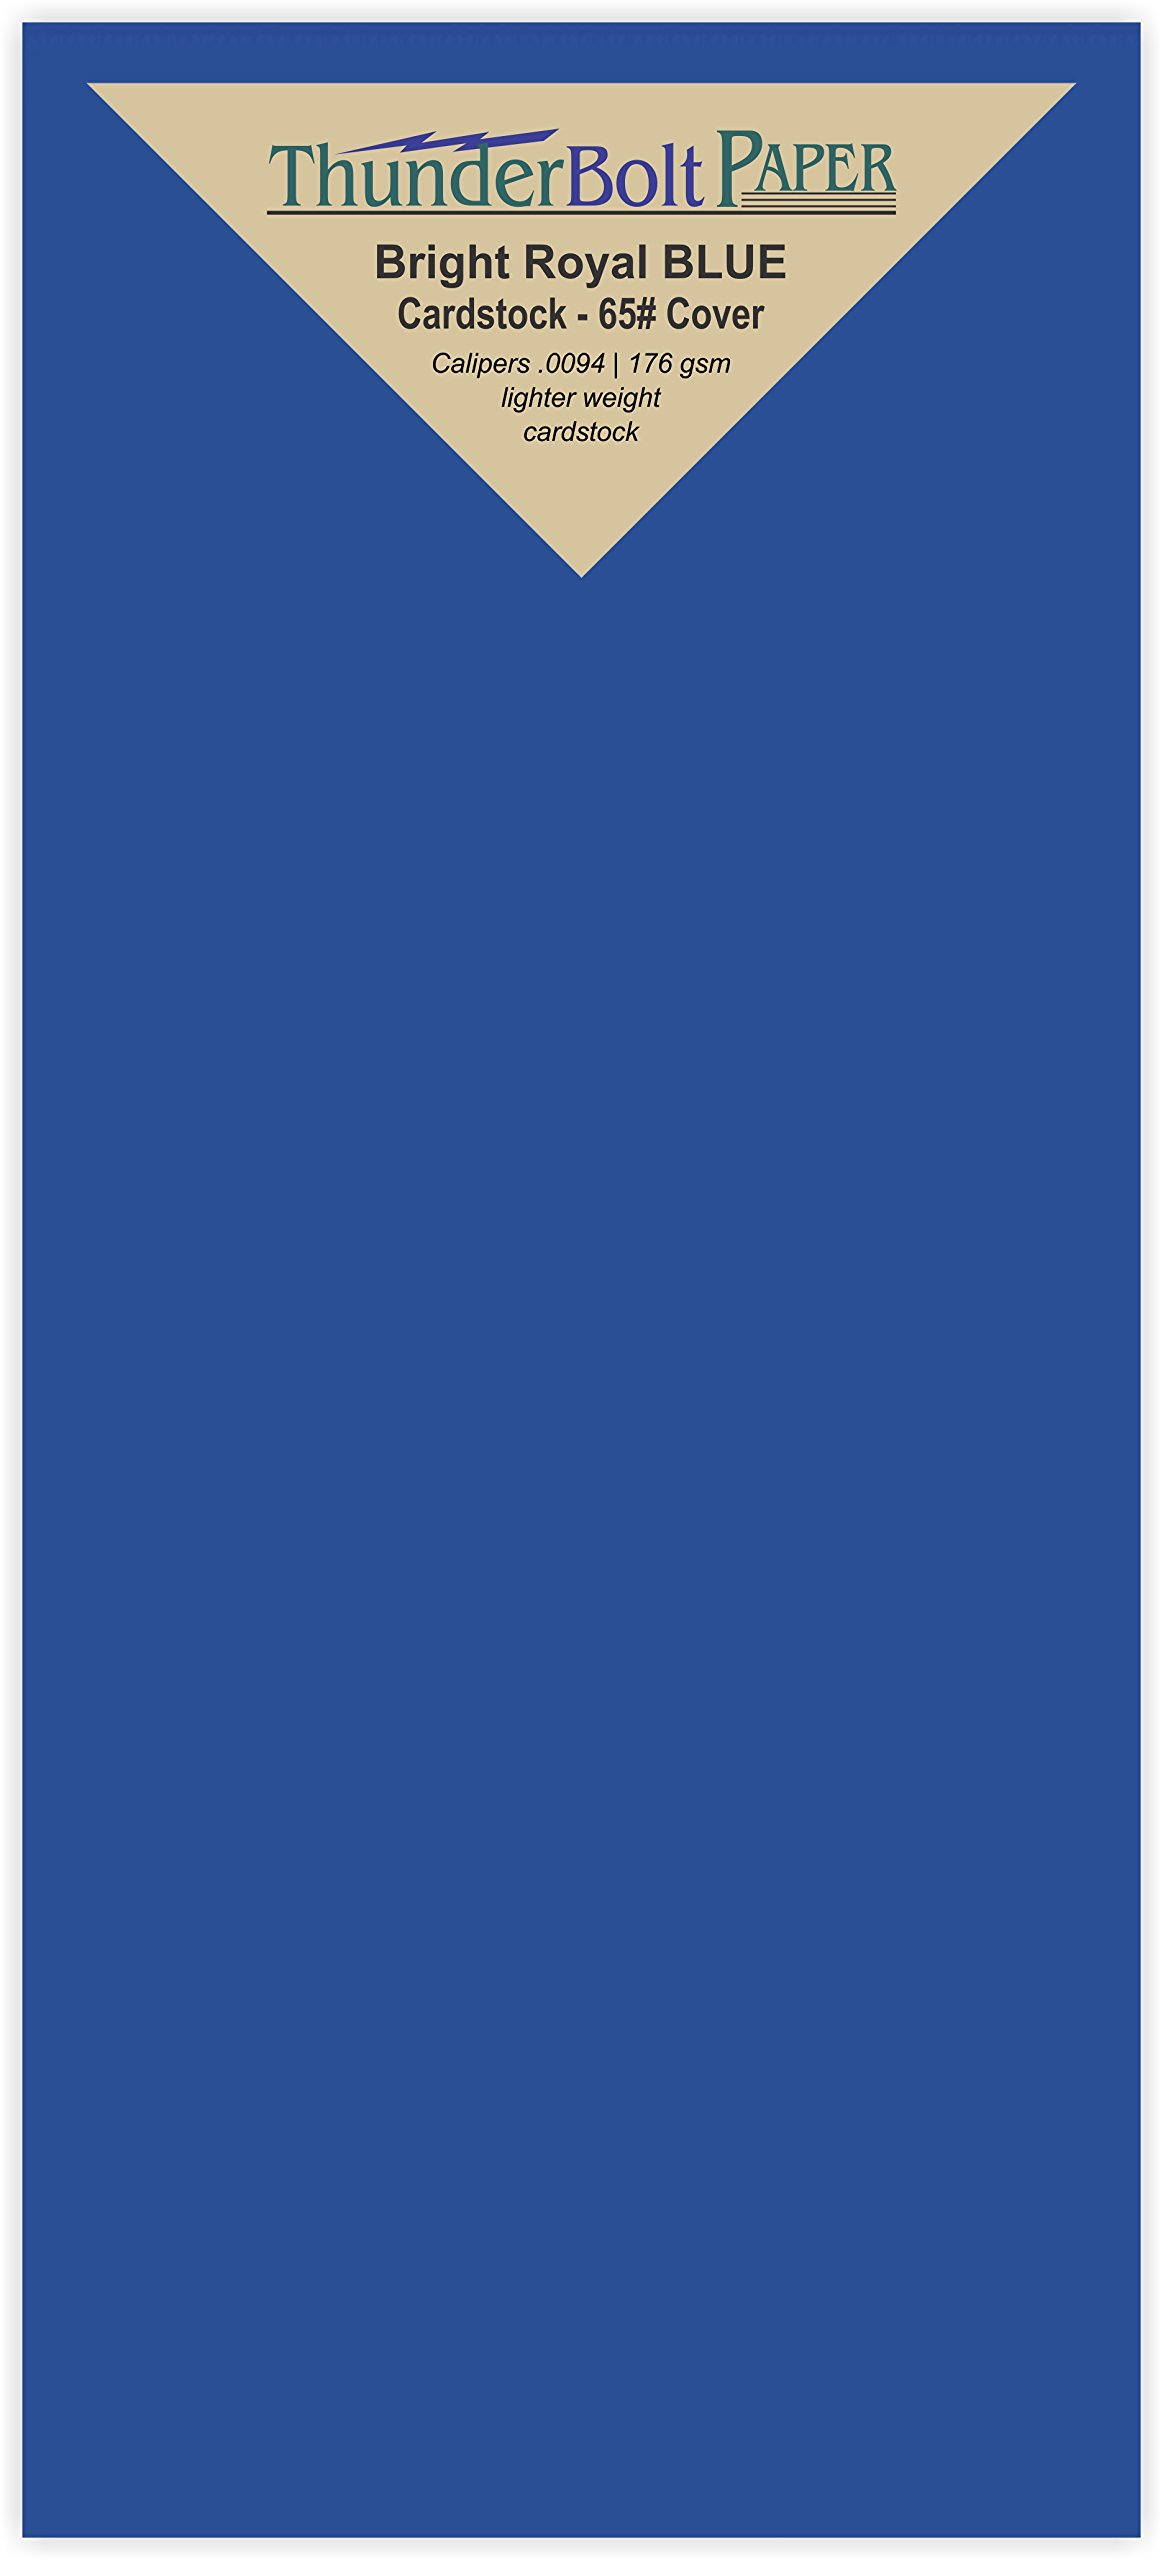 150 Bright Royal Blue 65# Cardstock Paper 4 X 9 Inches #10 Envelope Insert Size - 65# Cover Light Weight Bright Card Stock - Printable Smooth Surface for Invitations